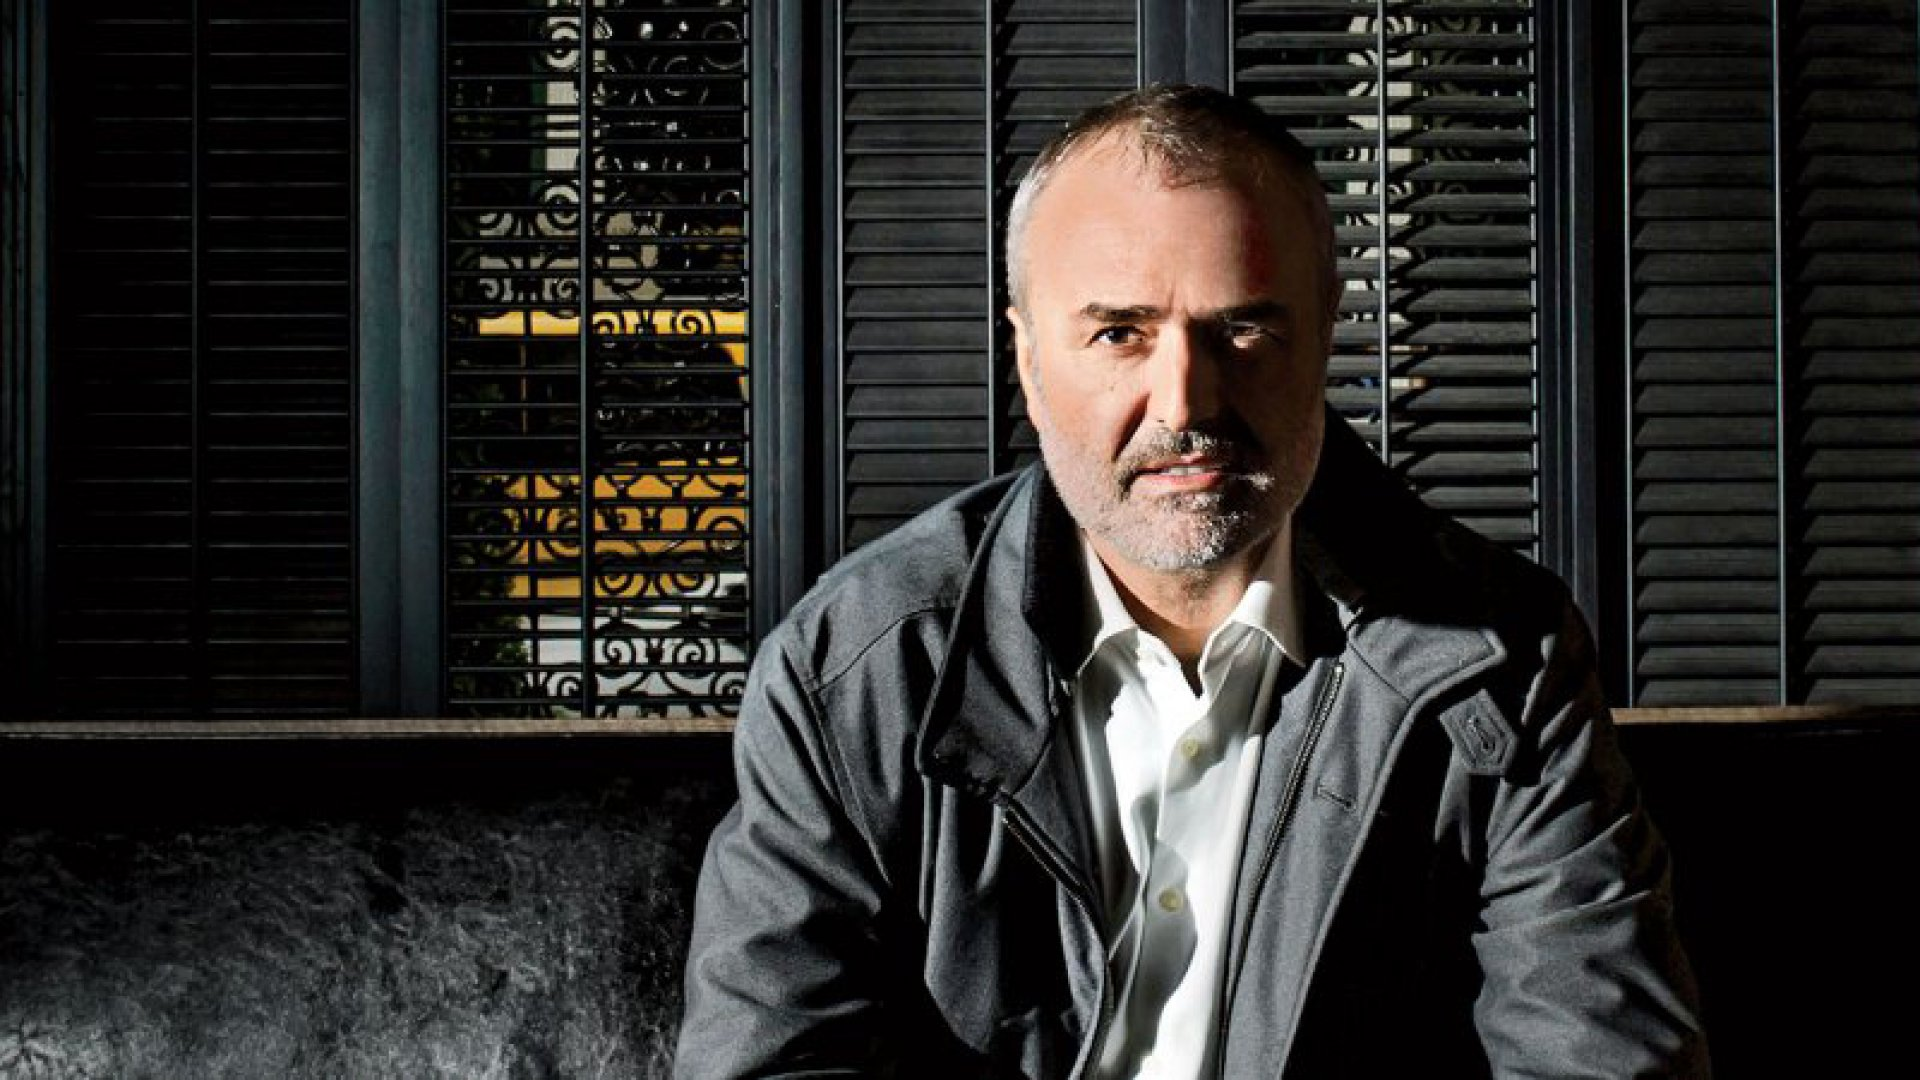 Gawker CEO Nick Denton just took the first outside investment in his company in a decade.